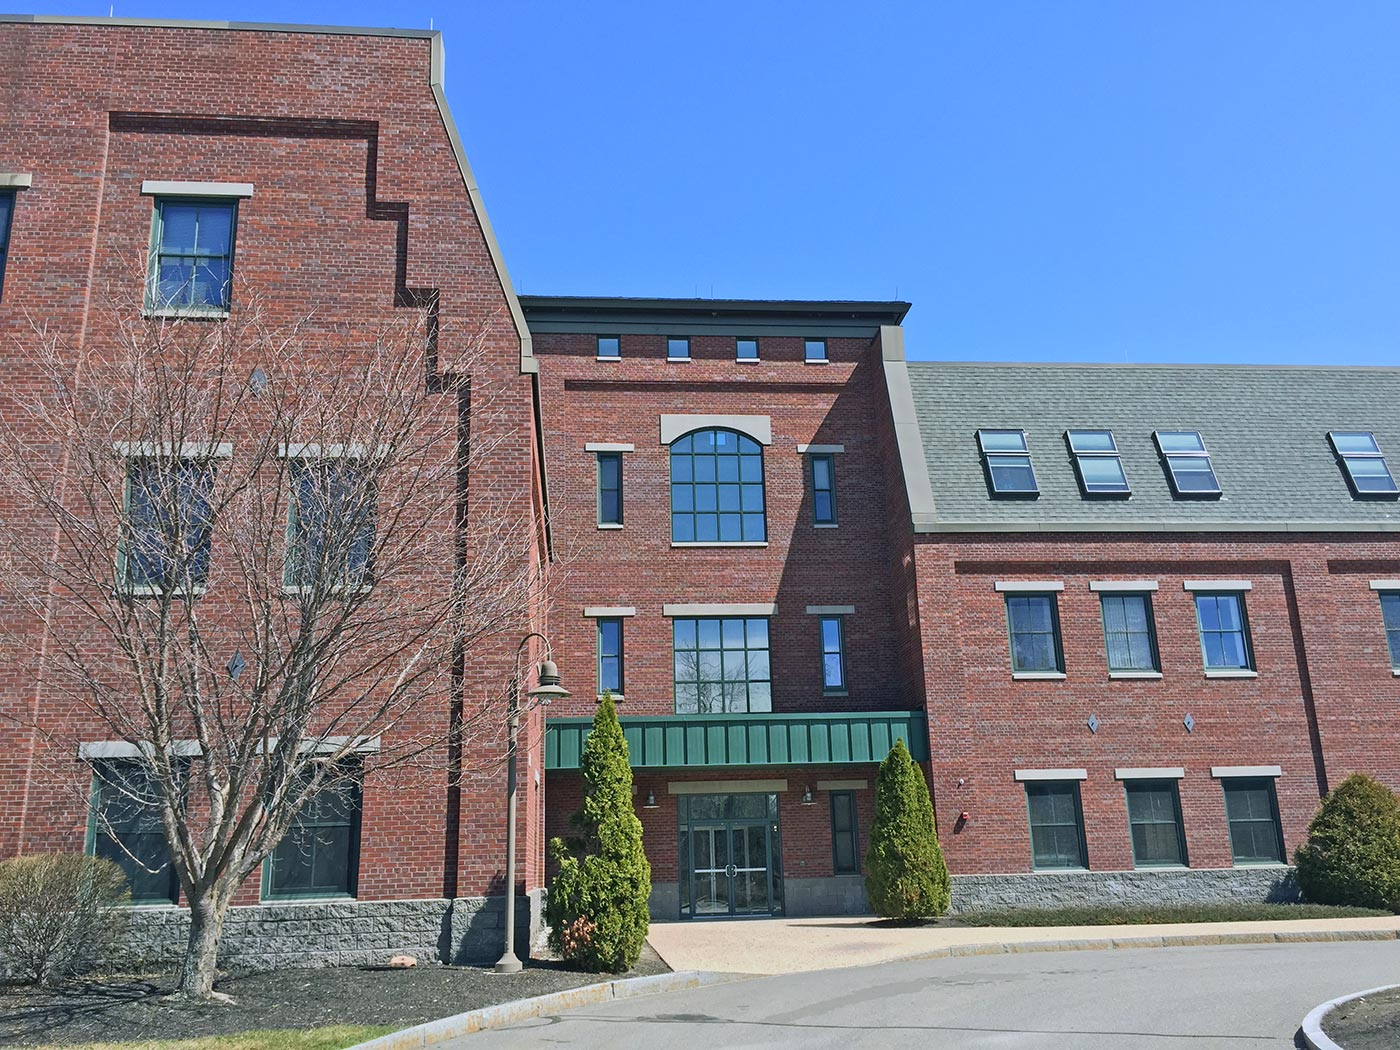 Commercial Insurance Brokers >> 8 Commerce Drive - Bedford, NH   Brady Sullivan Commercial ...